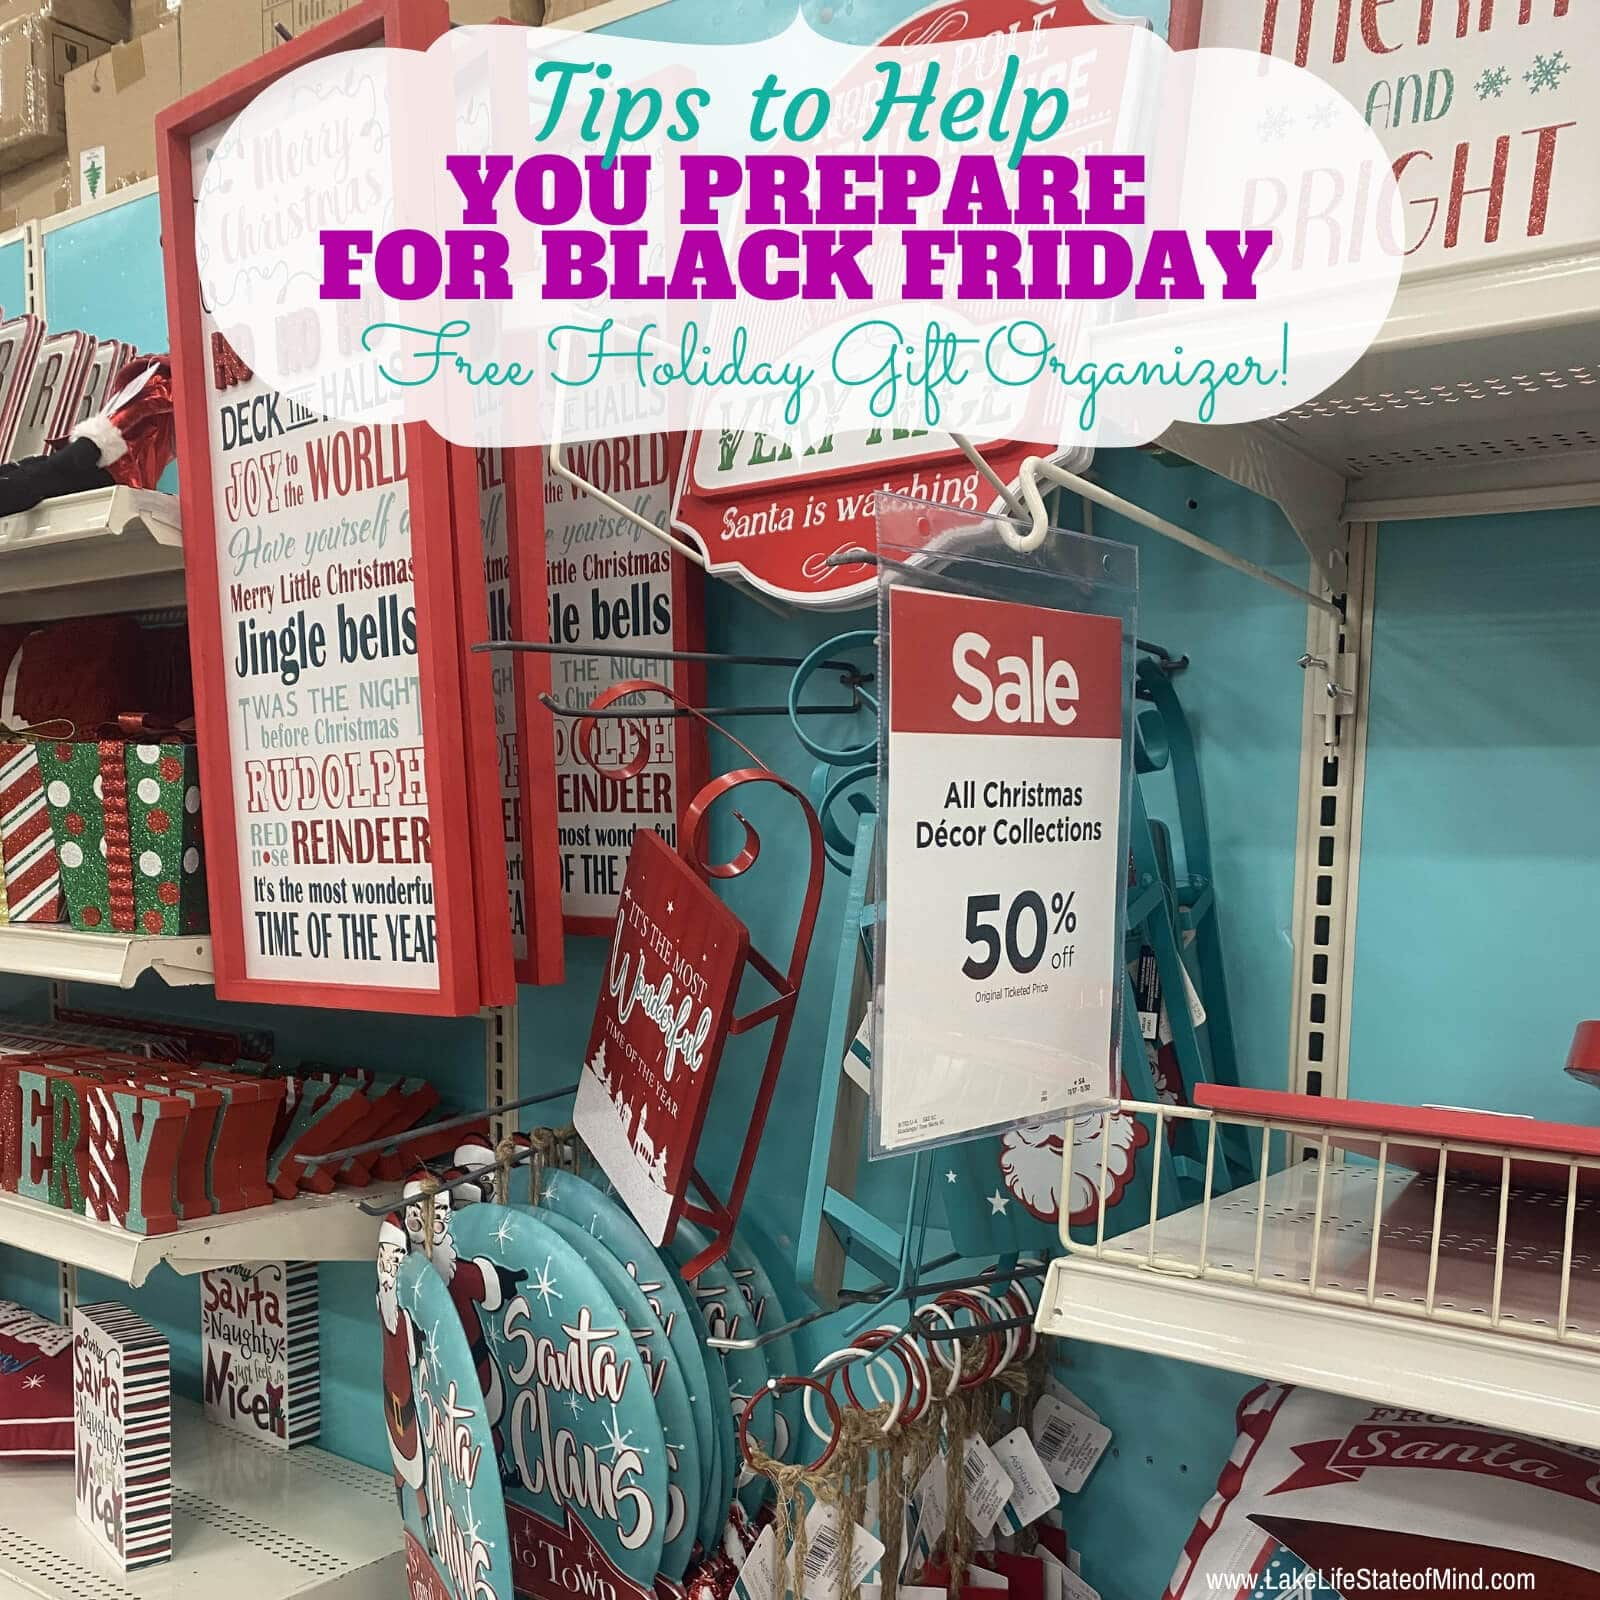 Tips to Help You Prepare for Black Friday